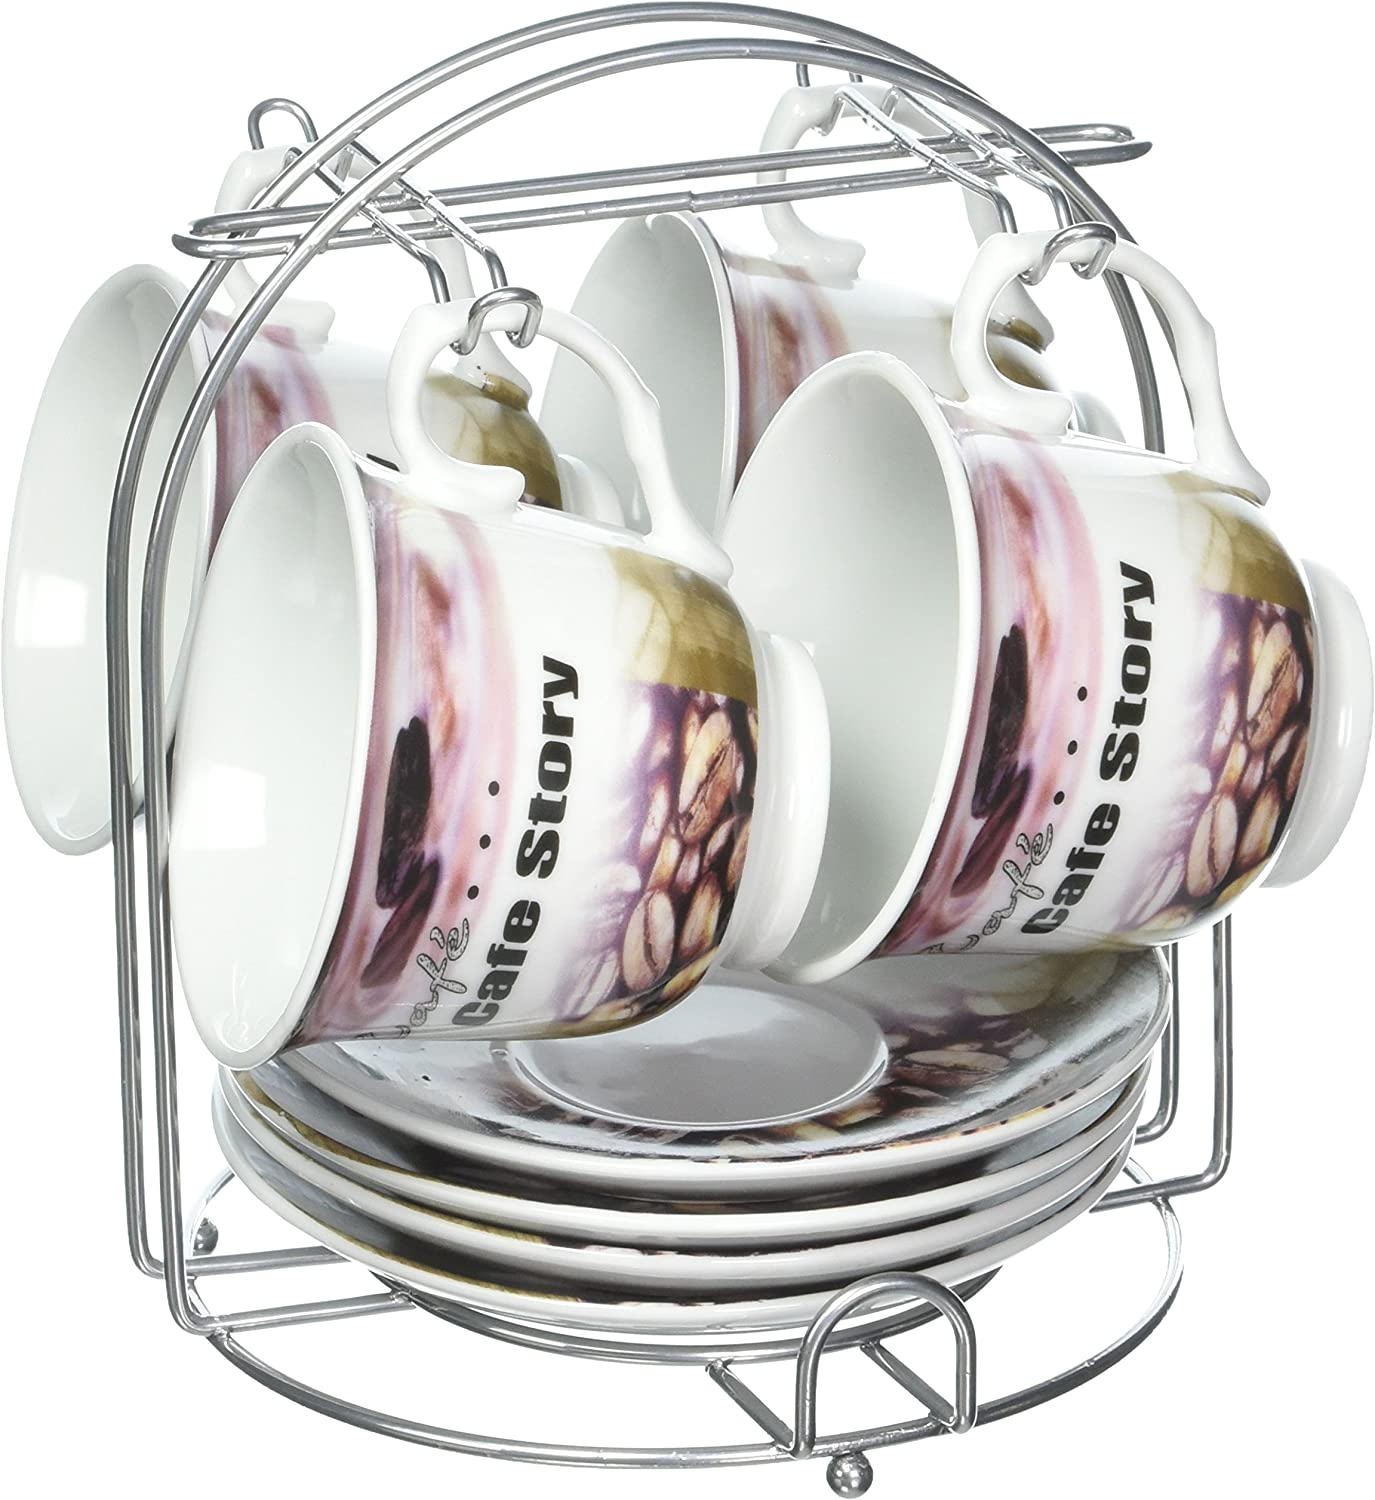 Lorren Home Trends 5-Piece Tea/Coffee Set, Brown Coffee Design